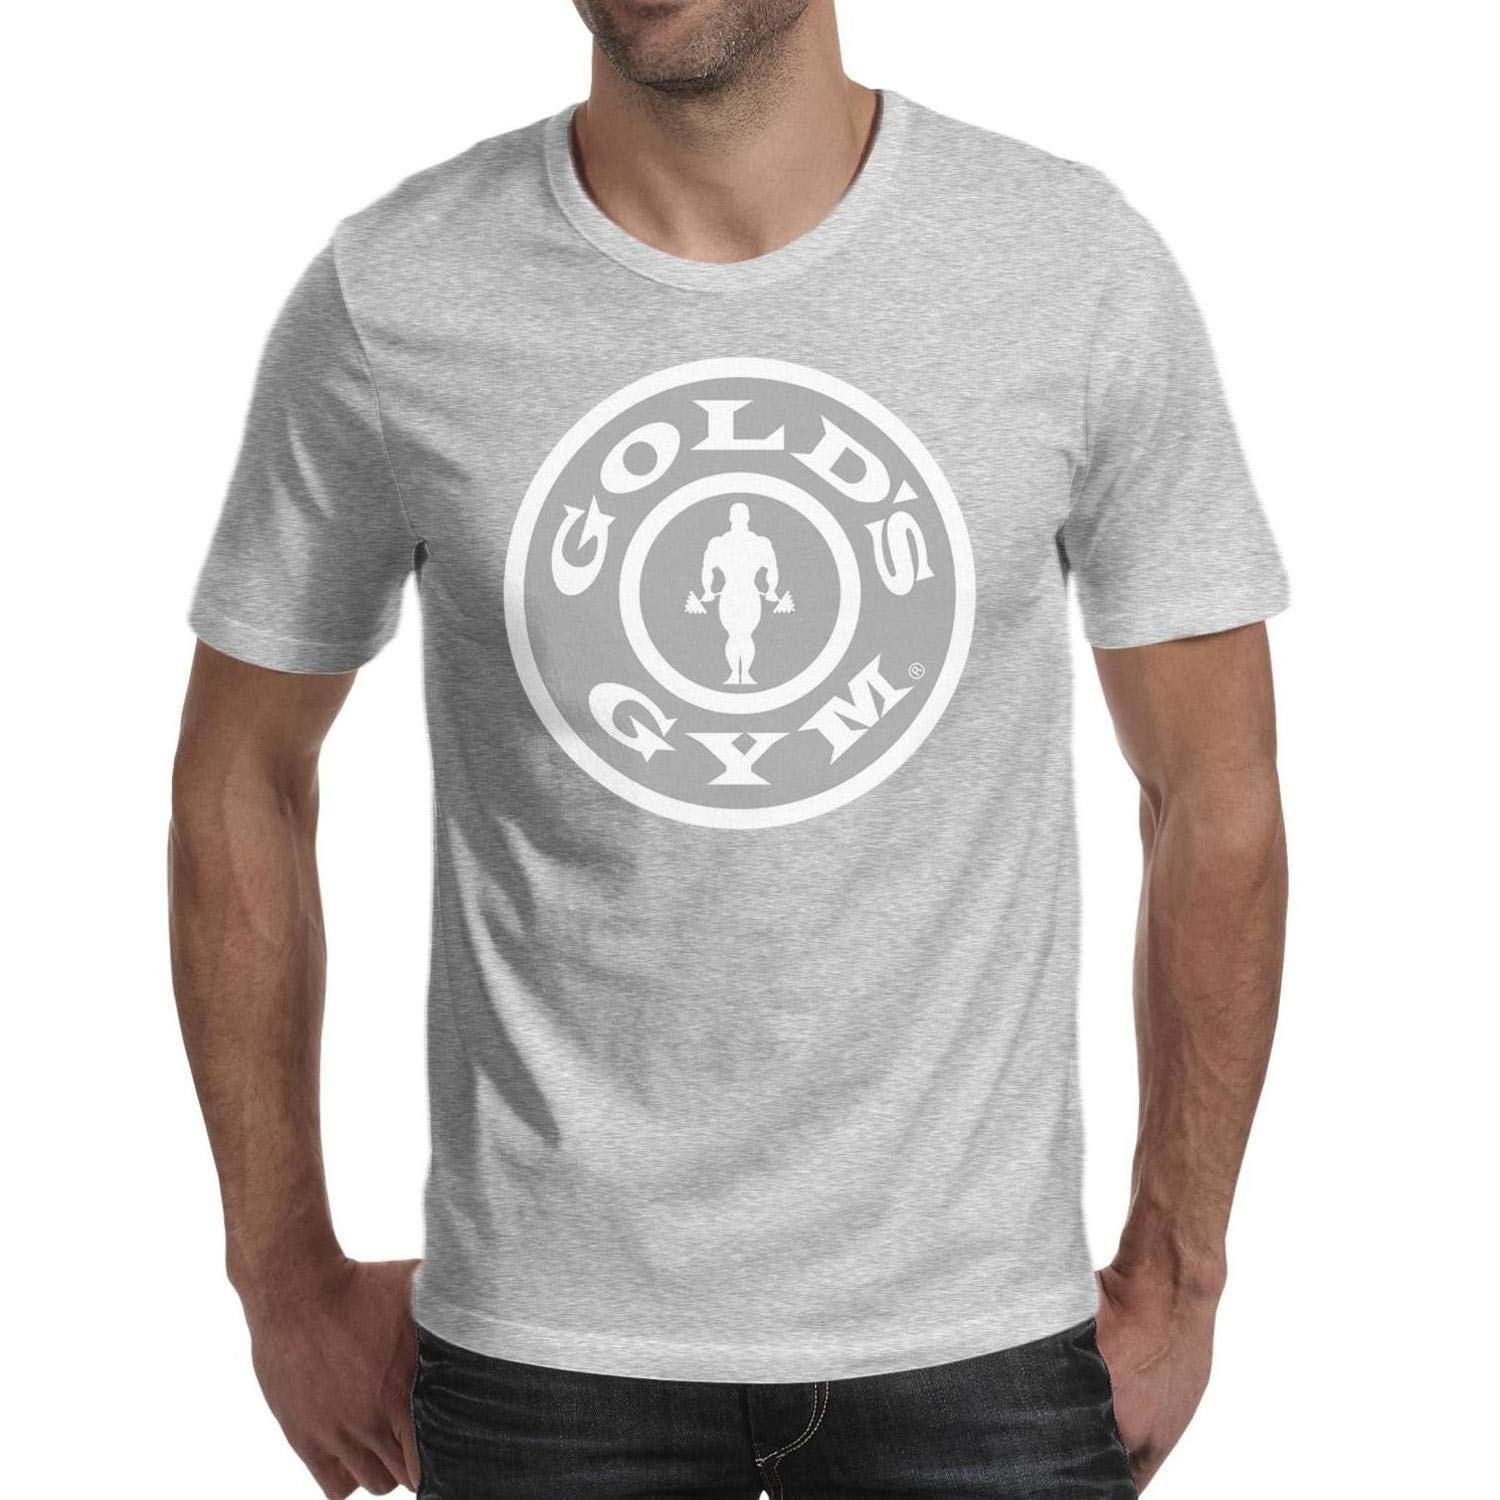 Golds Gym Mens Short Sleeve T Shirt Printing Champion Pullover